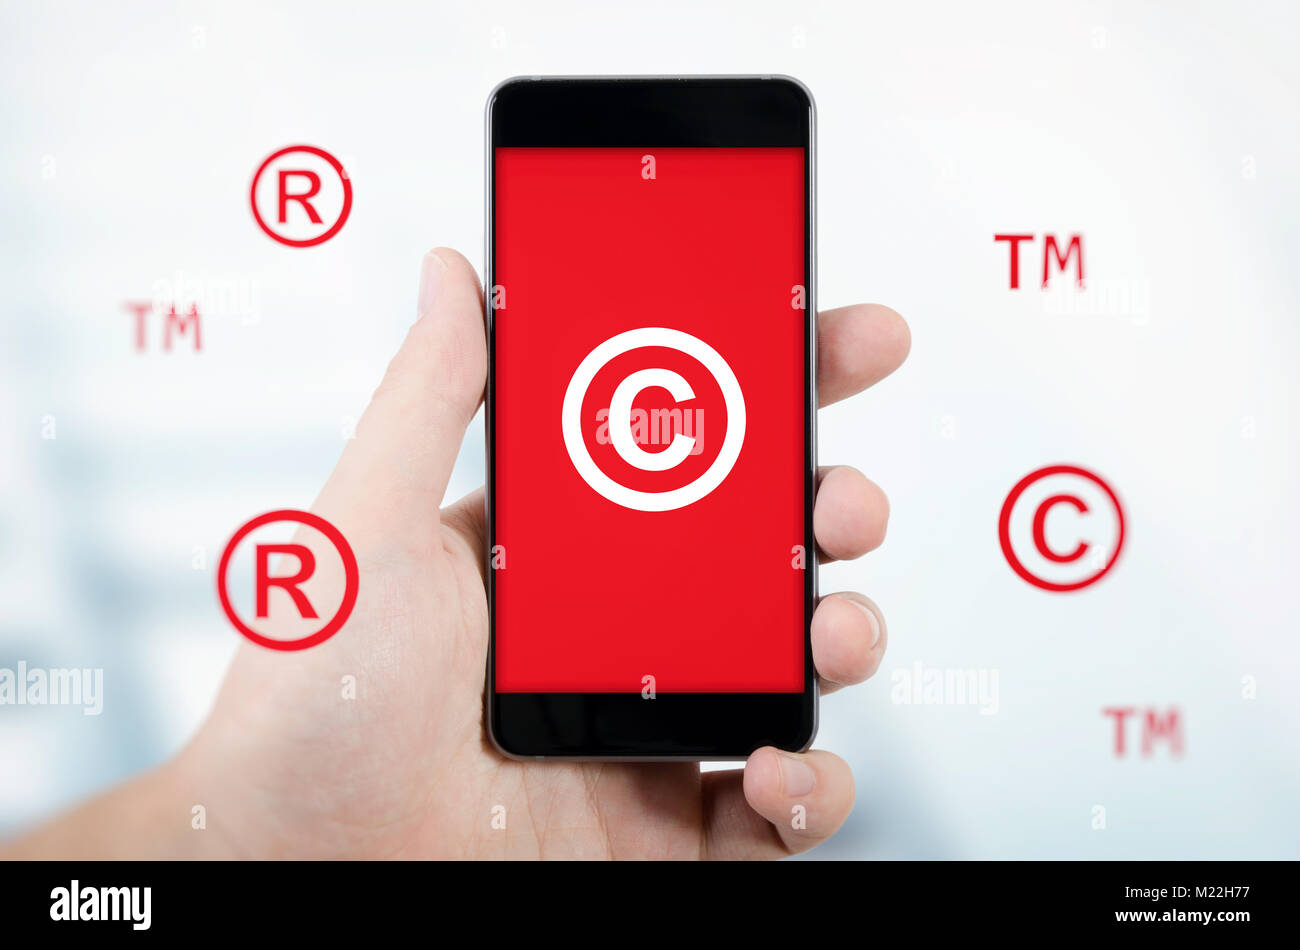 Trademark symbols stock photos trademark symbols stock images copyright trademark symbols flying around smartphone security and piracy composition stock image biocorpaavc